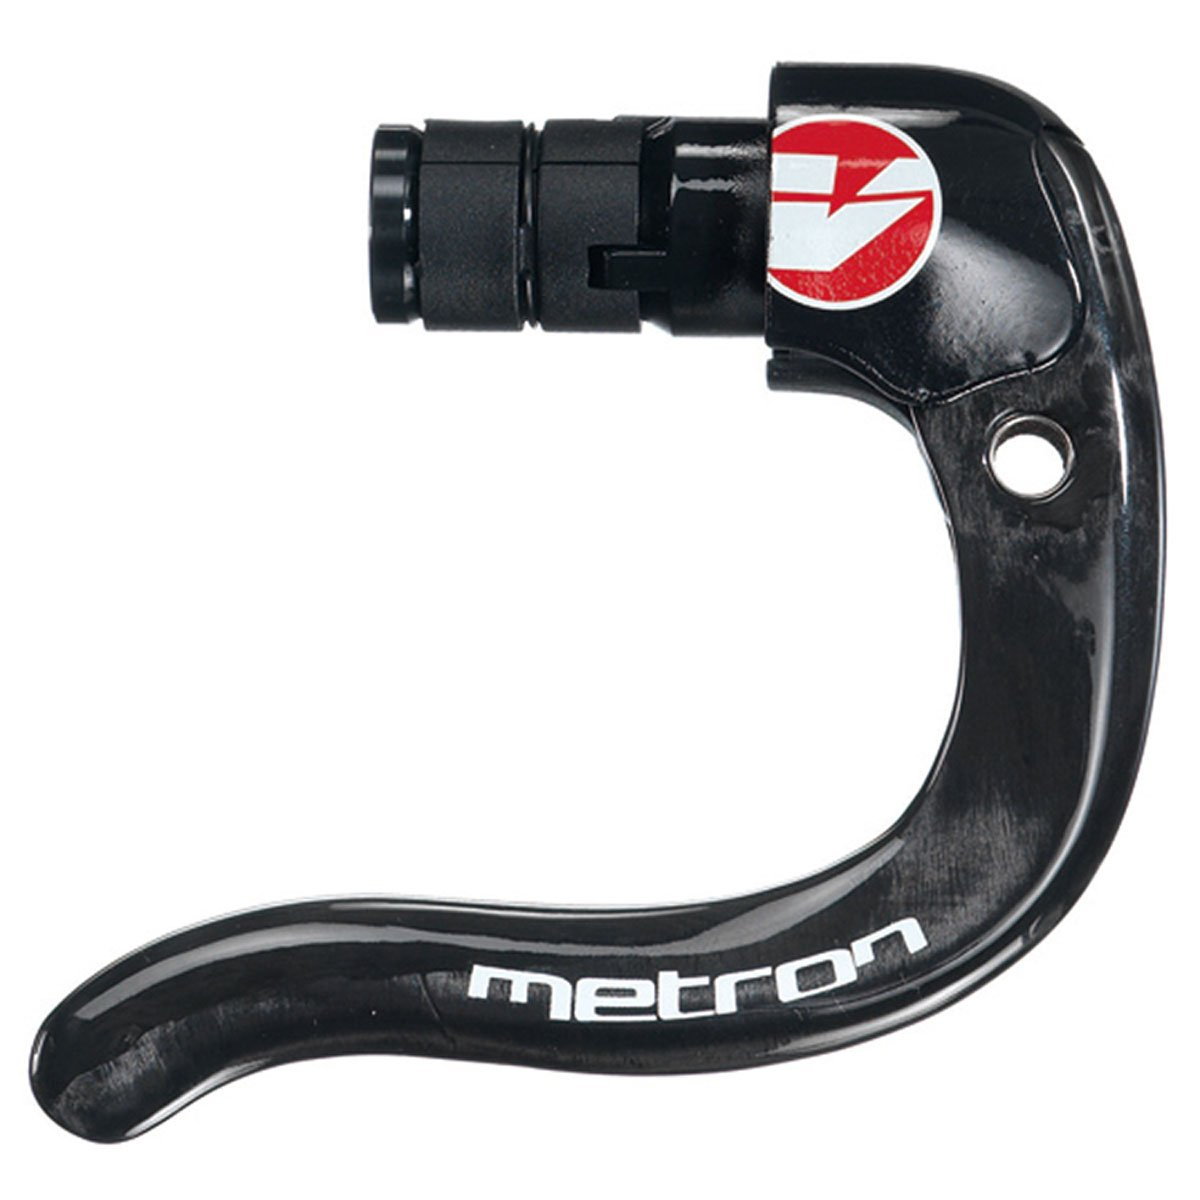 FSA Vision Tech Metron Carbon Aero Bicycle Brake Levers - 670-3779